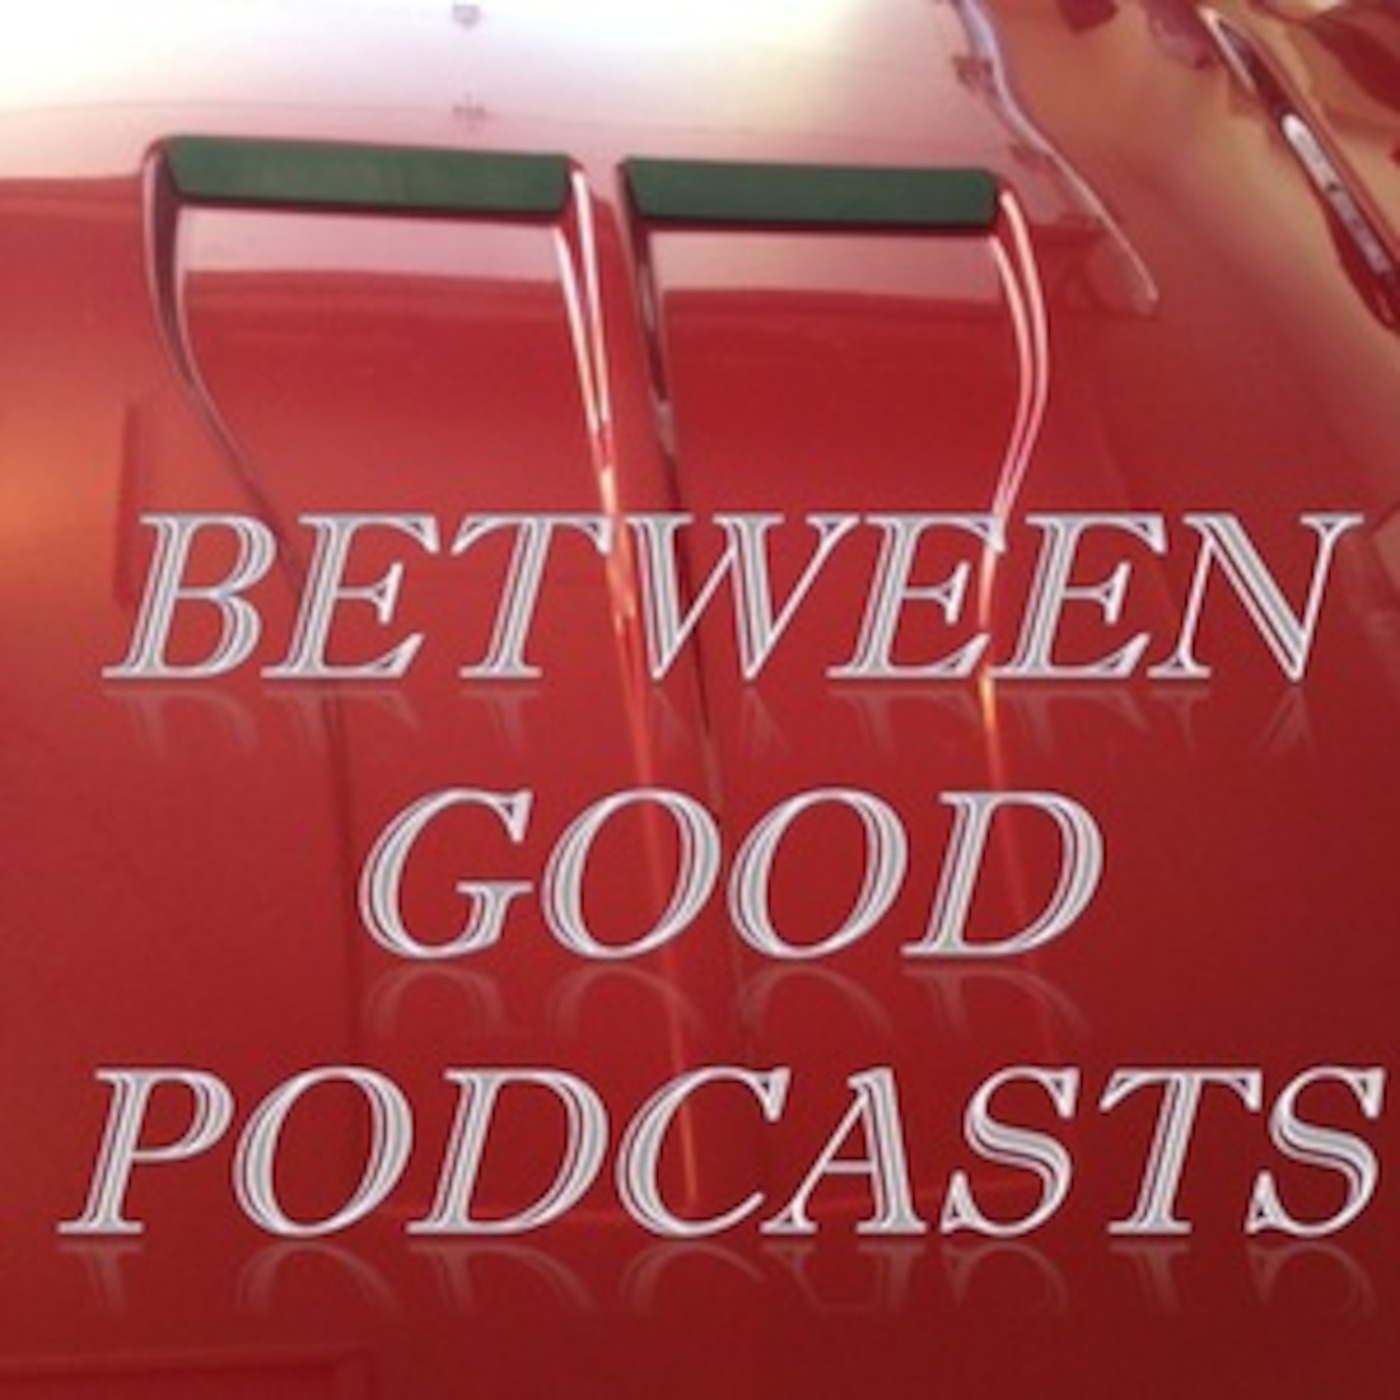 Between Good Podcasts